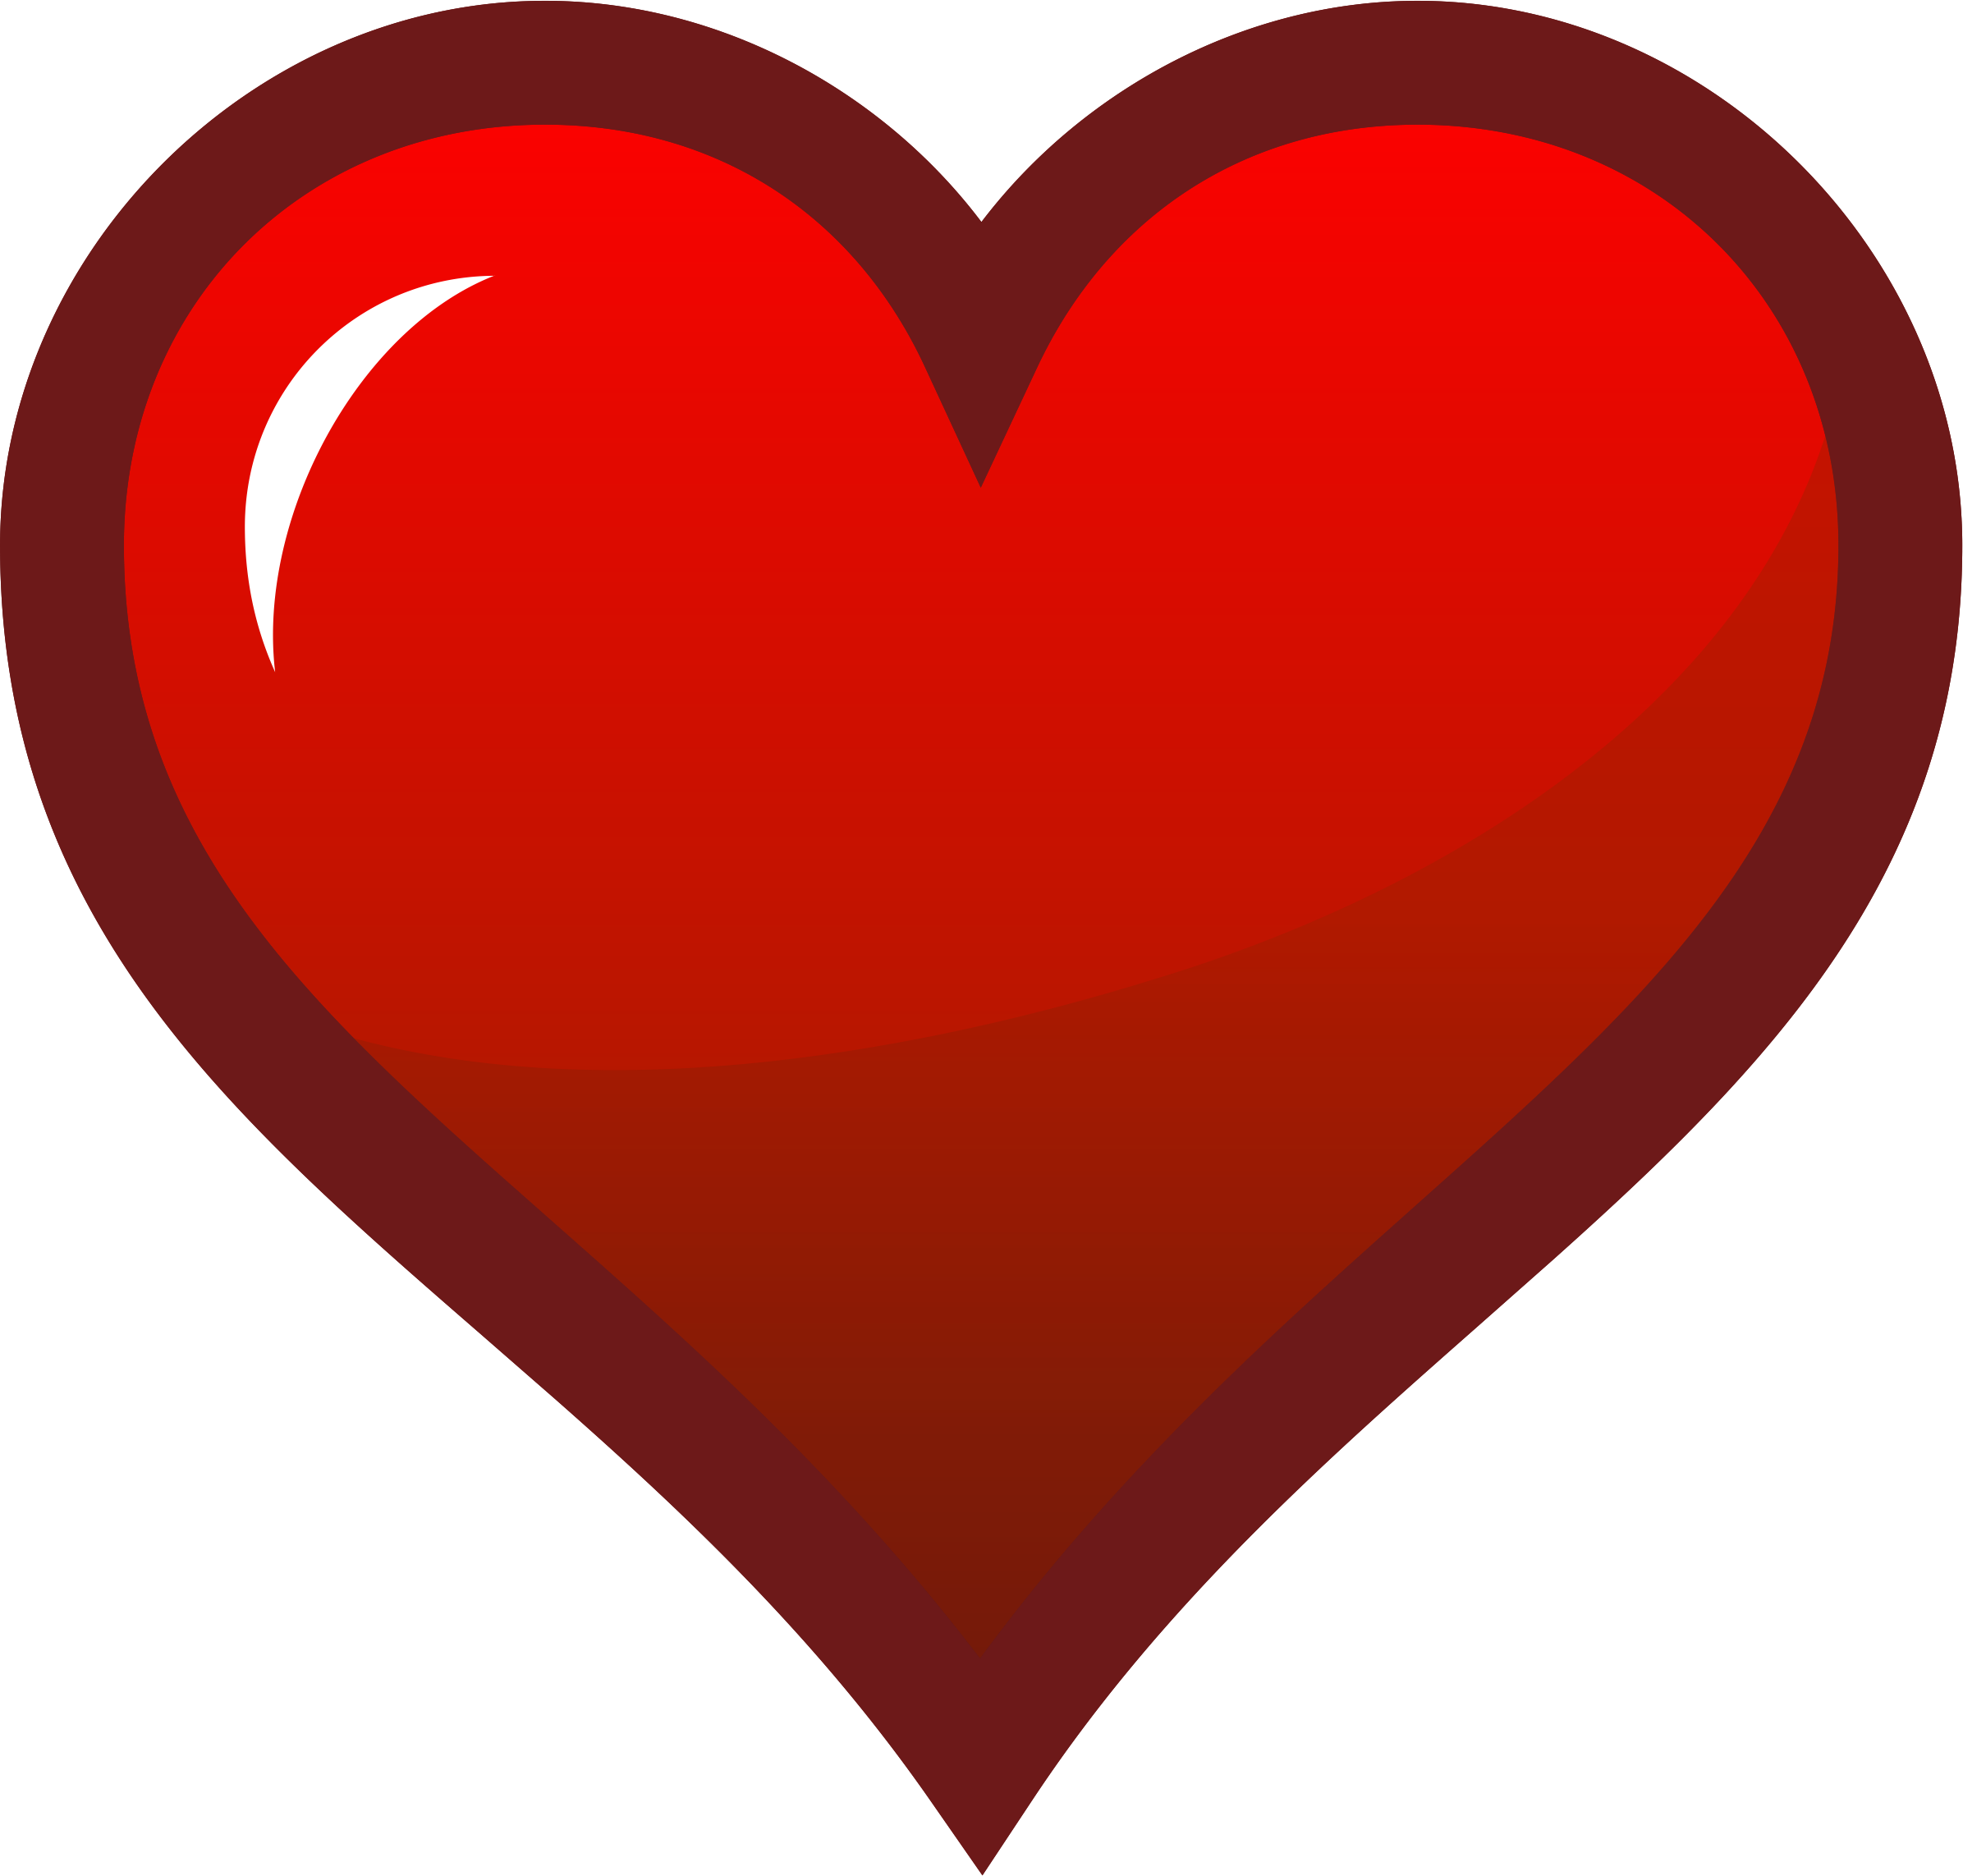 Hearts clipart icon Icon Red Heart Clipart Red